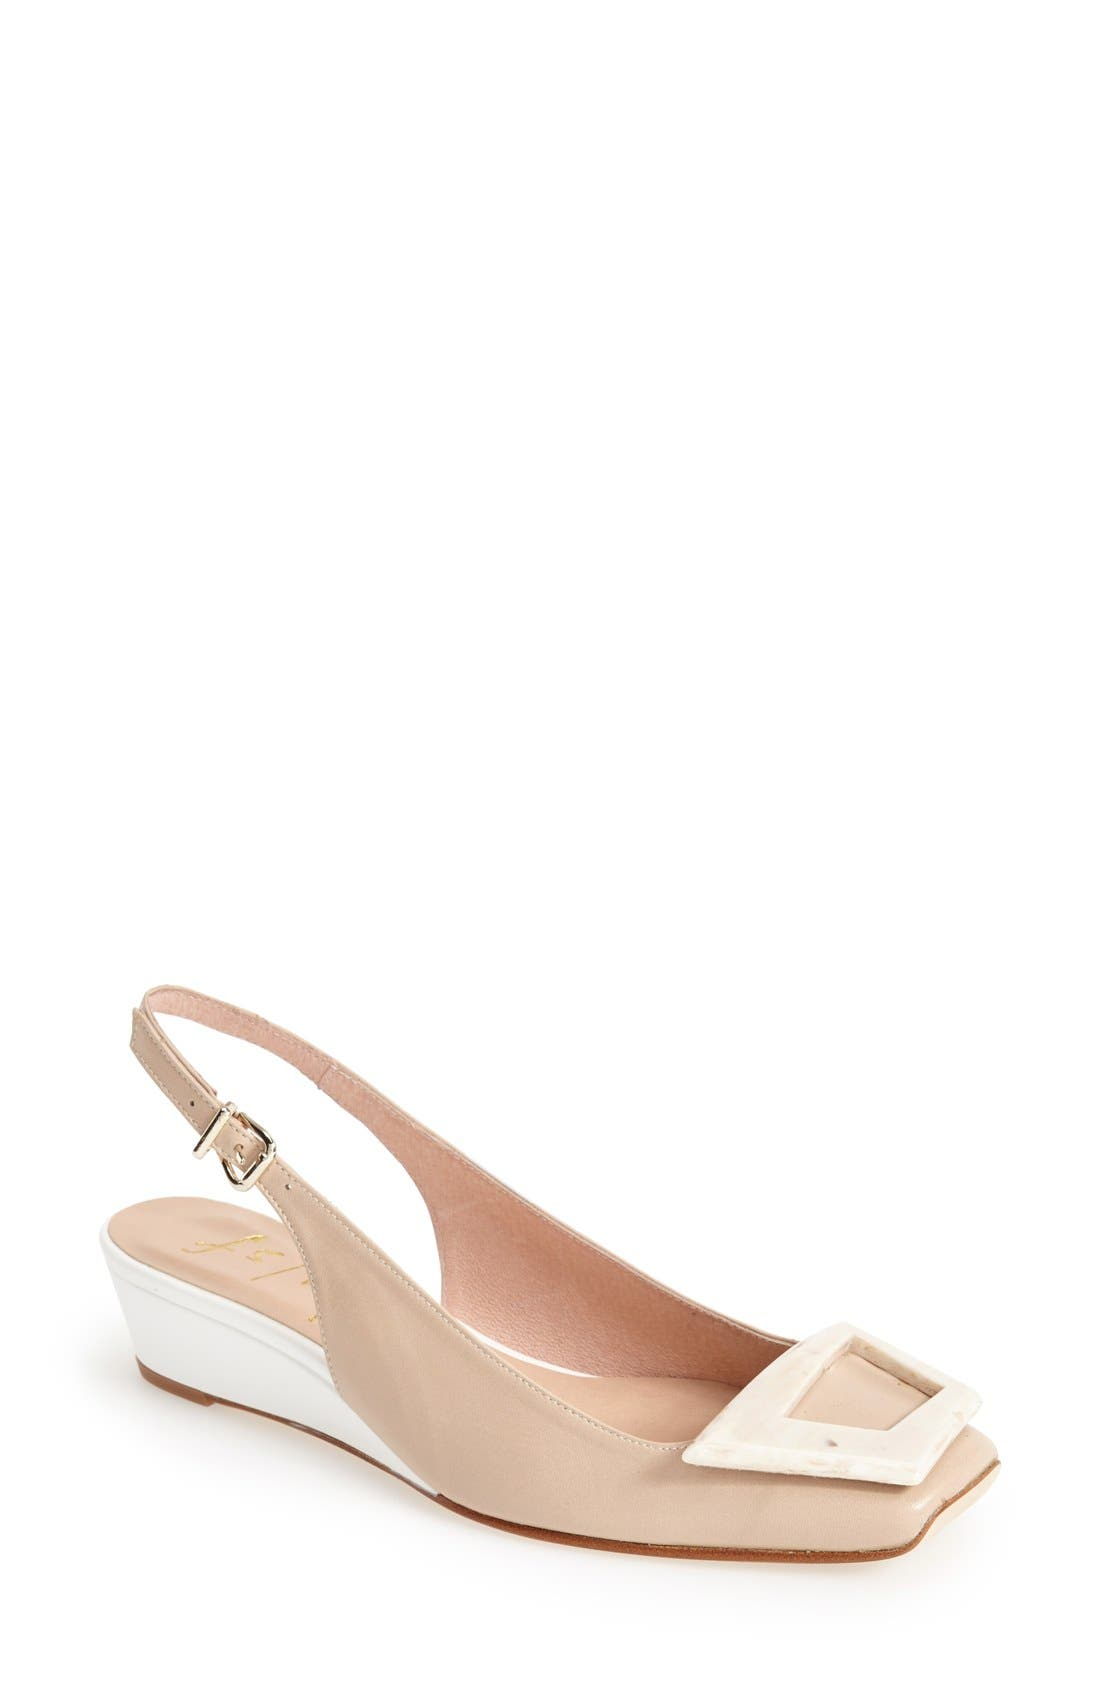 Main Image - French Sole 'Noter' Slingback Wedge Pump (Women)